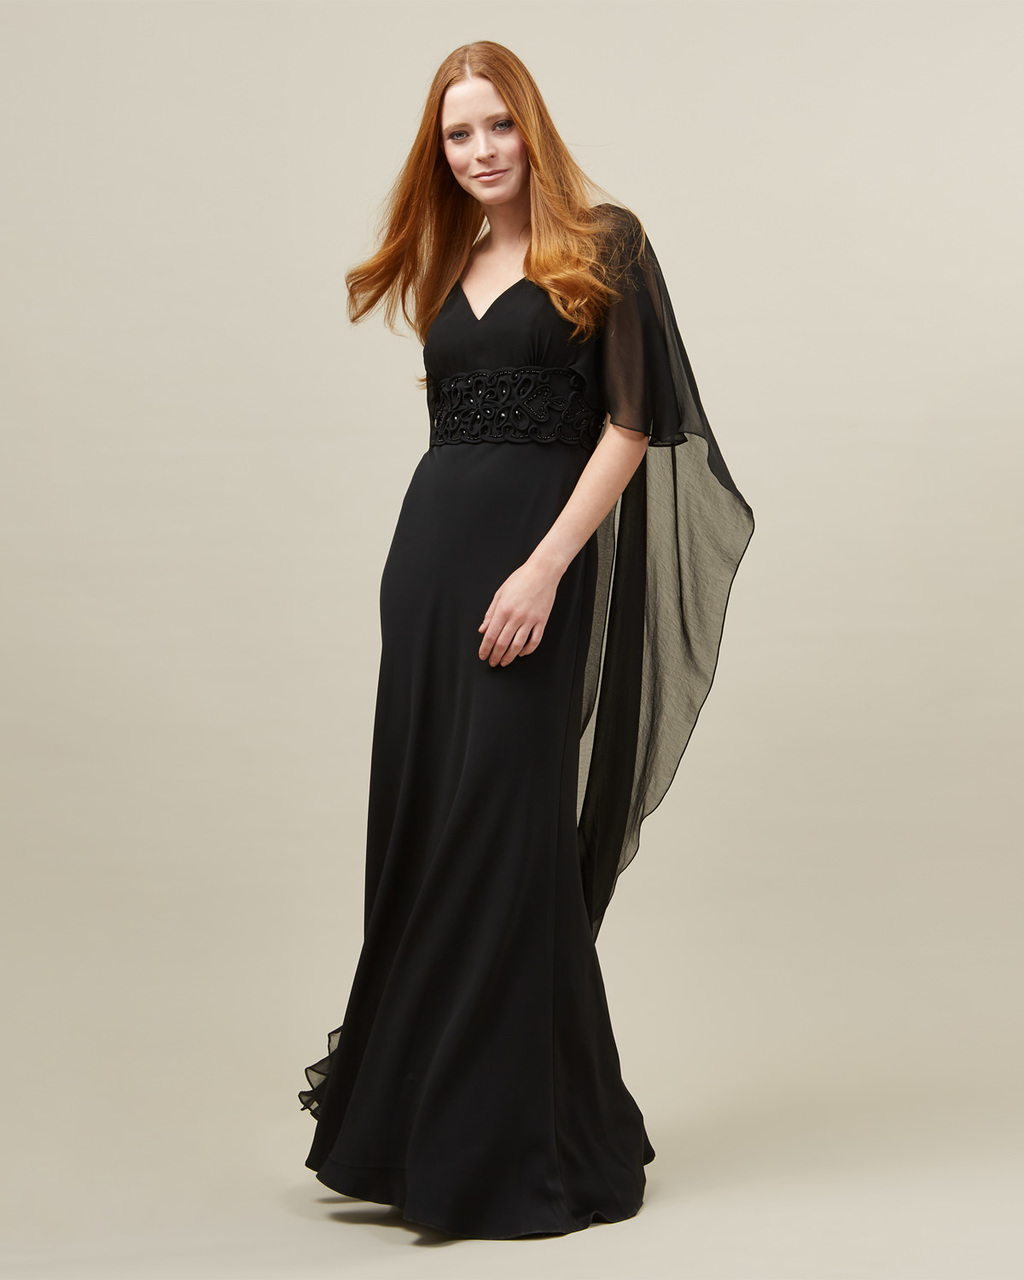 Vera Cape Dress - neckline: v-neck; pattern: plain; style: maxi dress; predominant colour: black; length: floor length; fit: body skimming; fibres: polyester/polyamide - 100%; occasions: occasion; sleeve style: cape sleeve; sleeve length: half sleeve; texture group: sheer fabrics/chiffon/organza etc.; pattern type: fabric; embellishment: beading; season: s/s 2016; wardrobe: event; embellishment location: waist